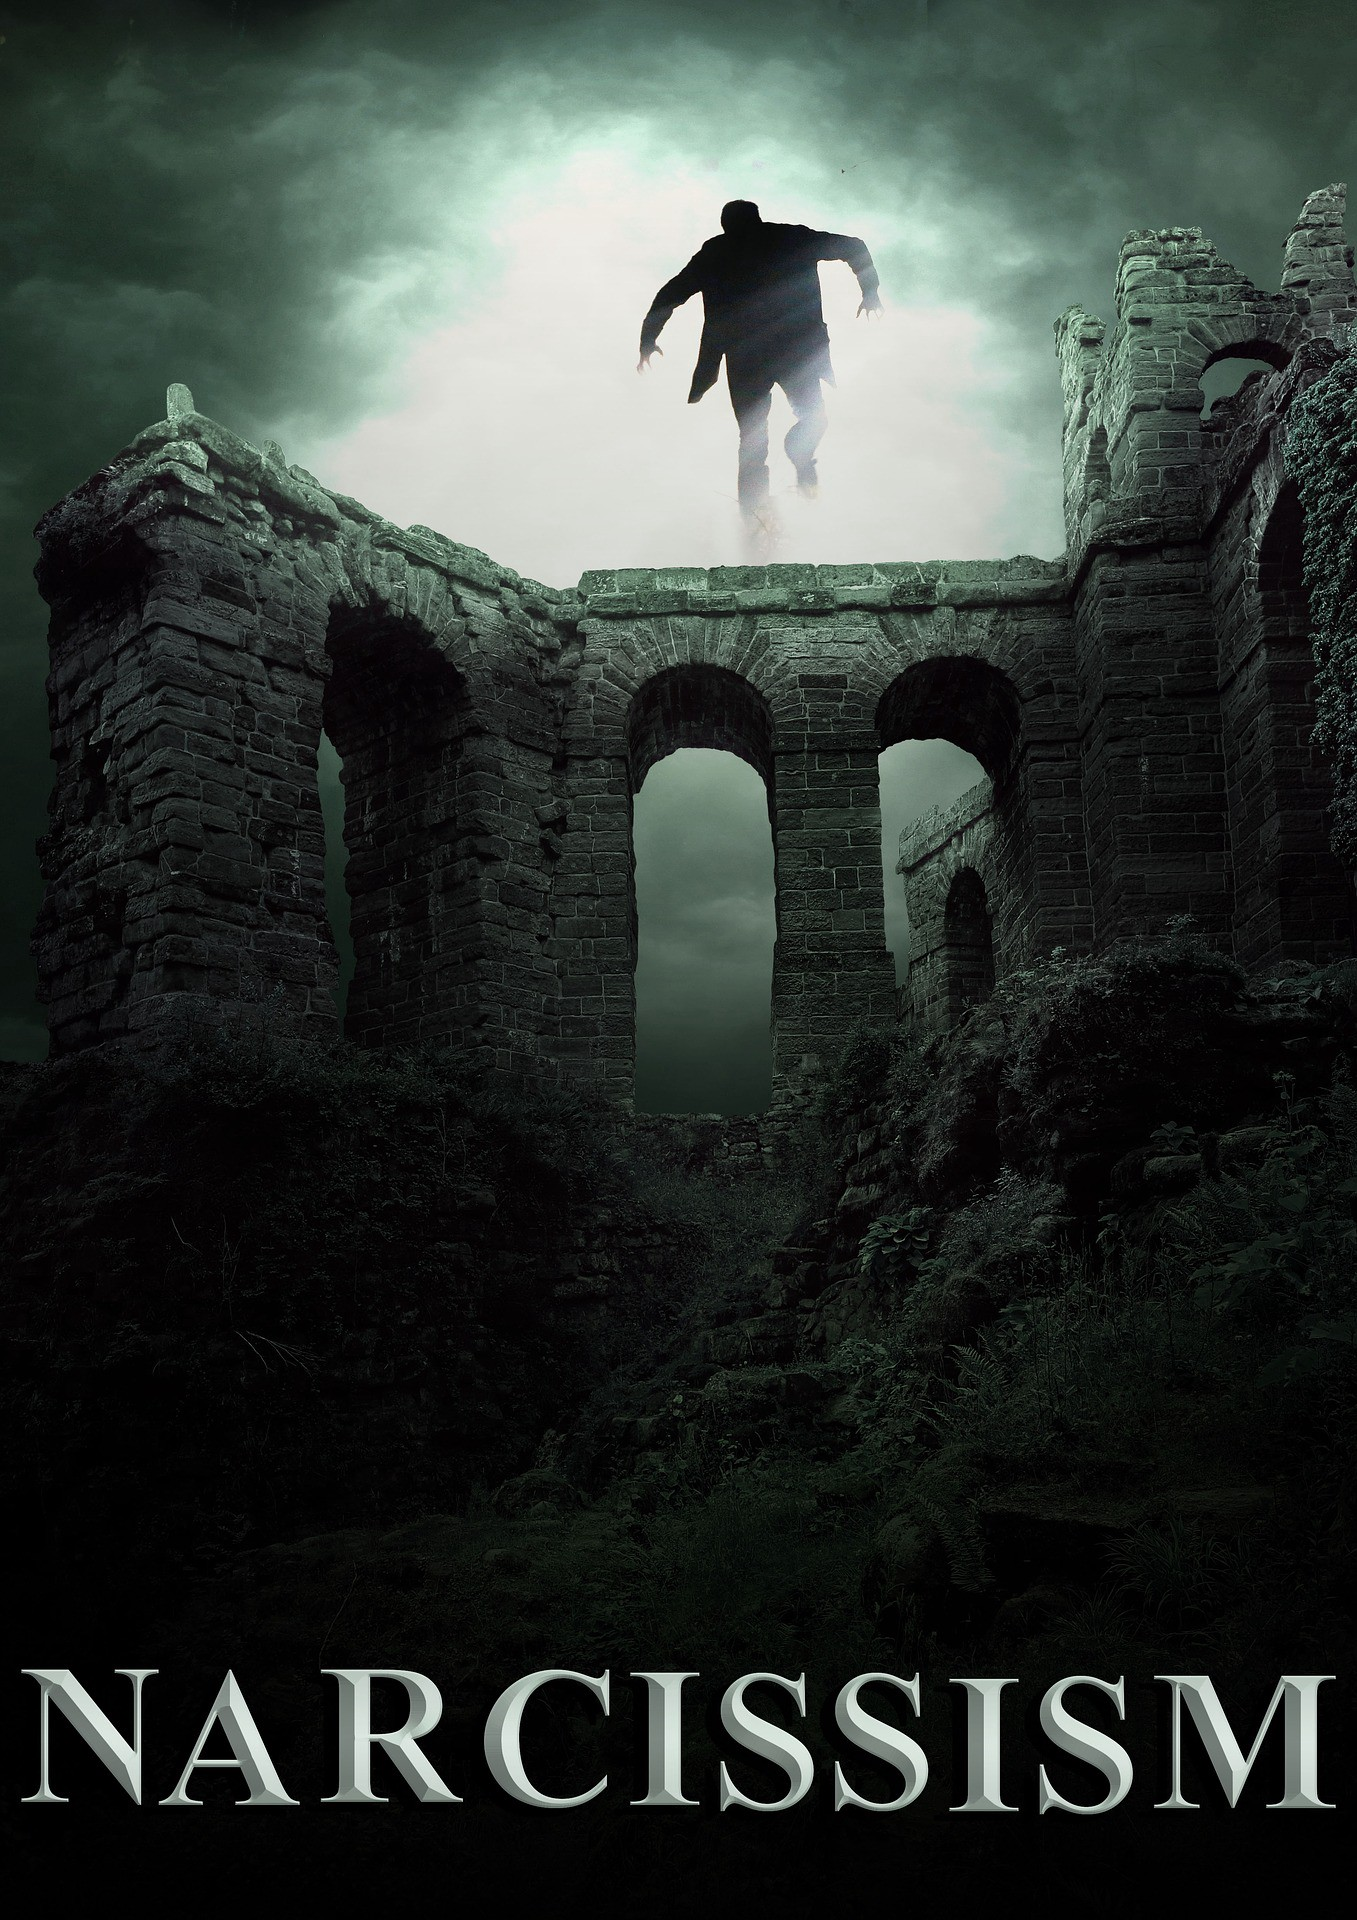 """A man on a castle wall with the word """"Narcissism"""" underneath"""